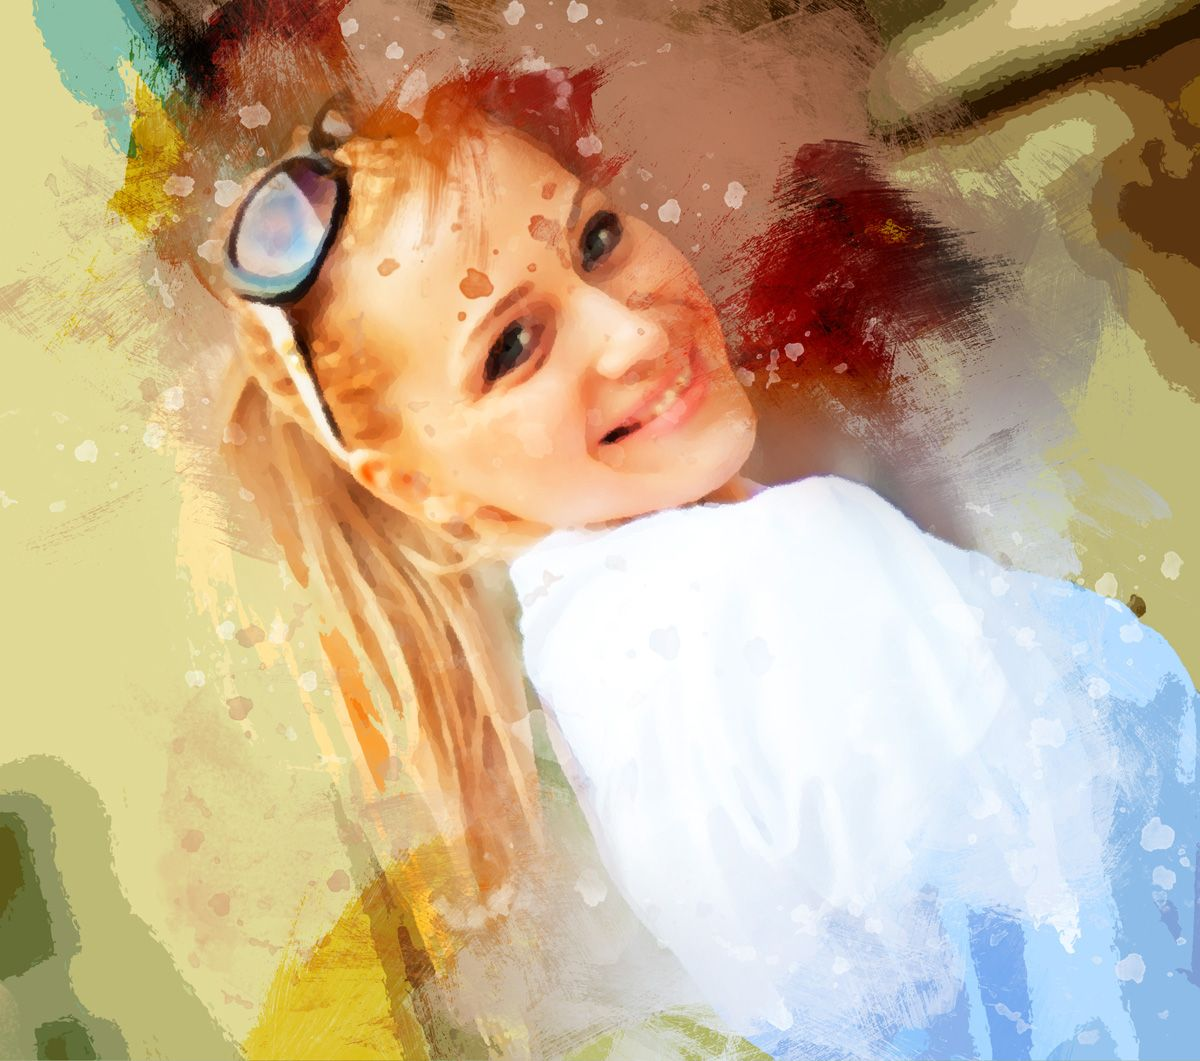 Smudge Painting Photoshop Action Aff Painting Ad Smudge